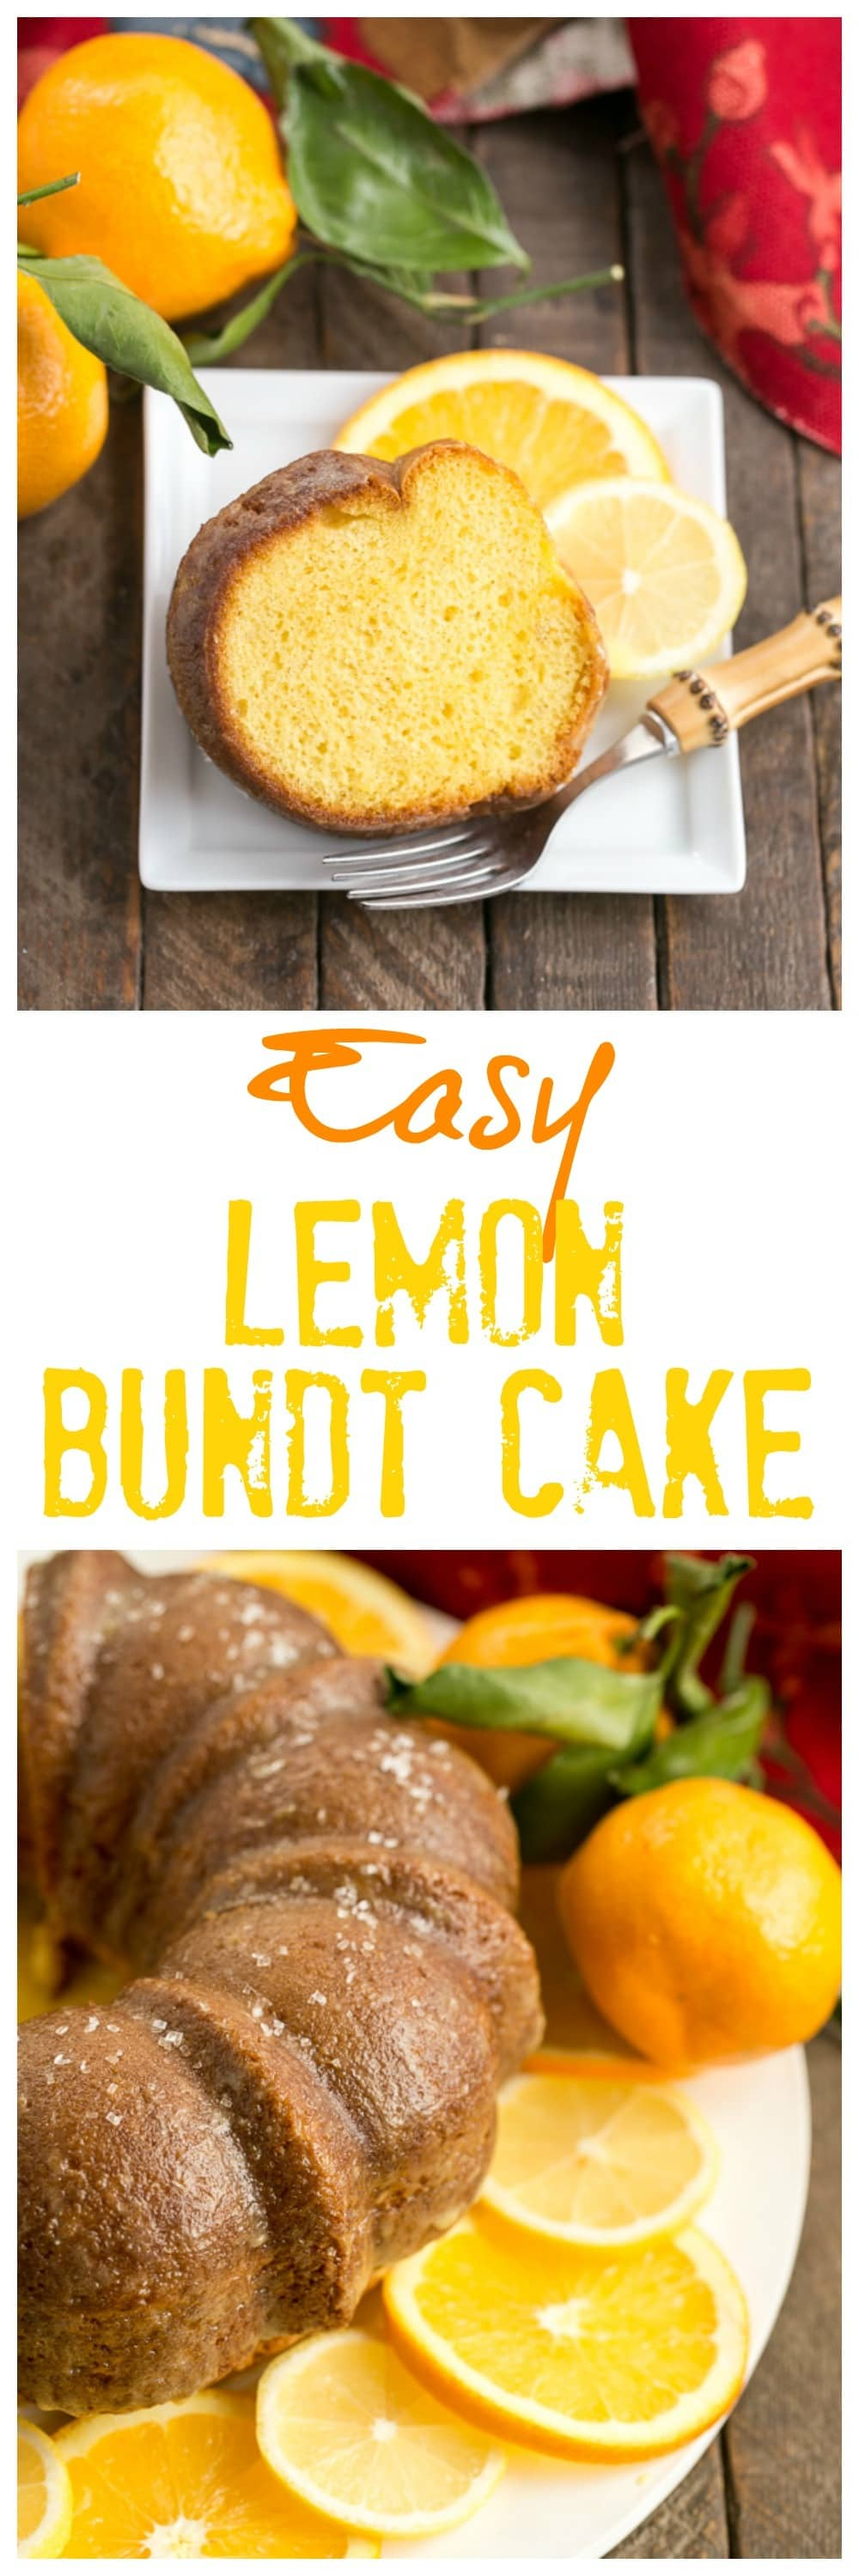 Easy Lemon Bundt Cake long pinterest collage